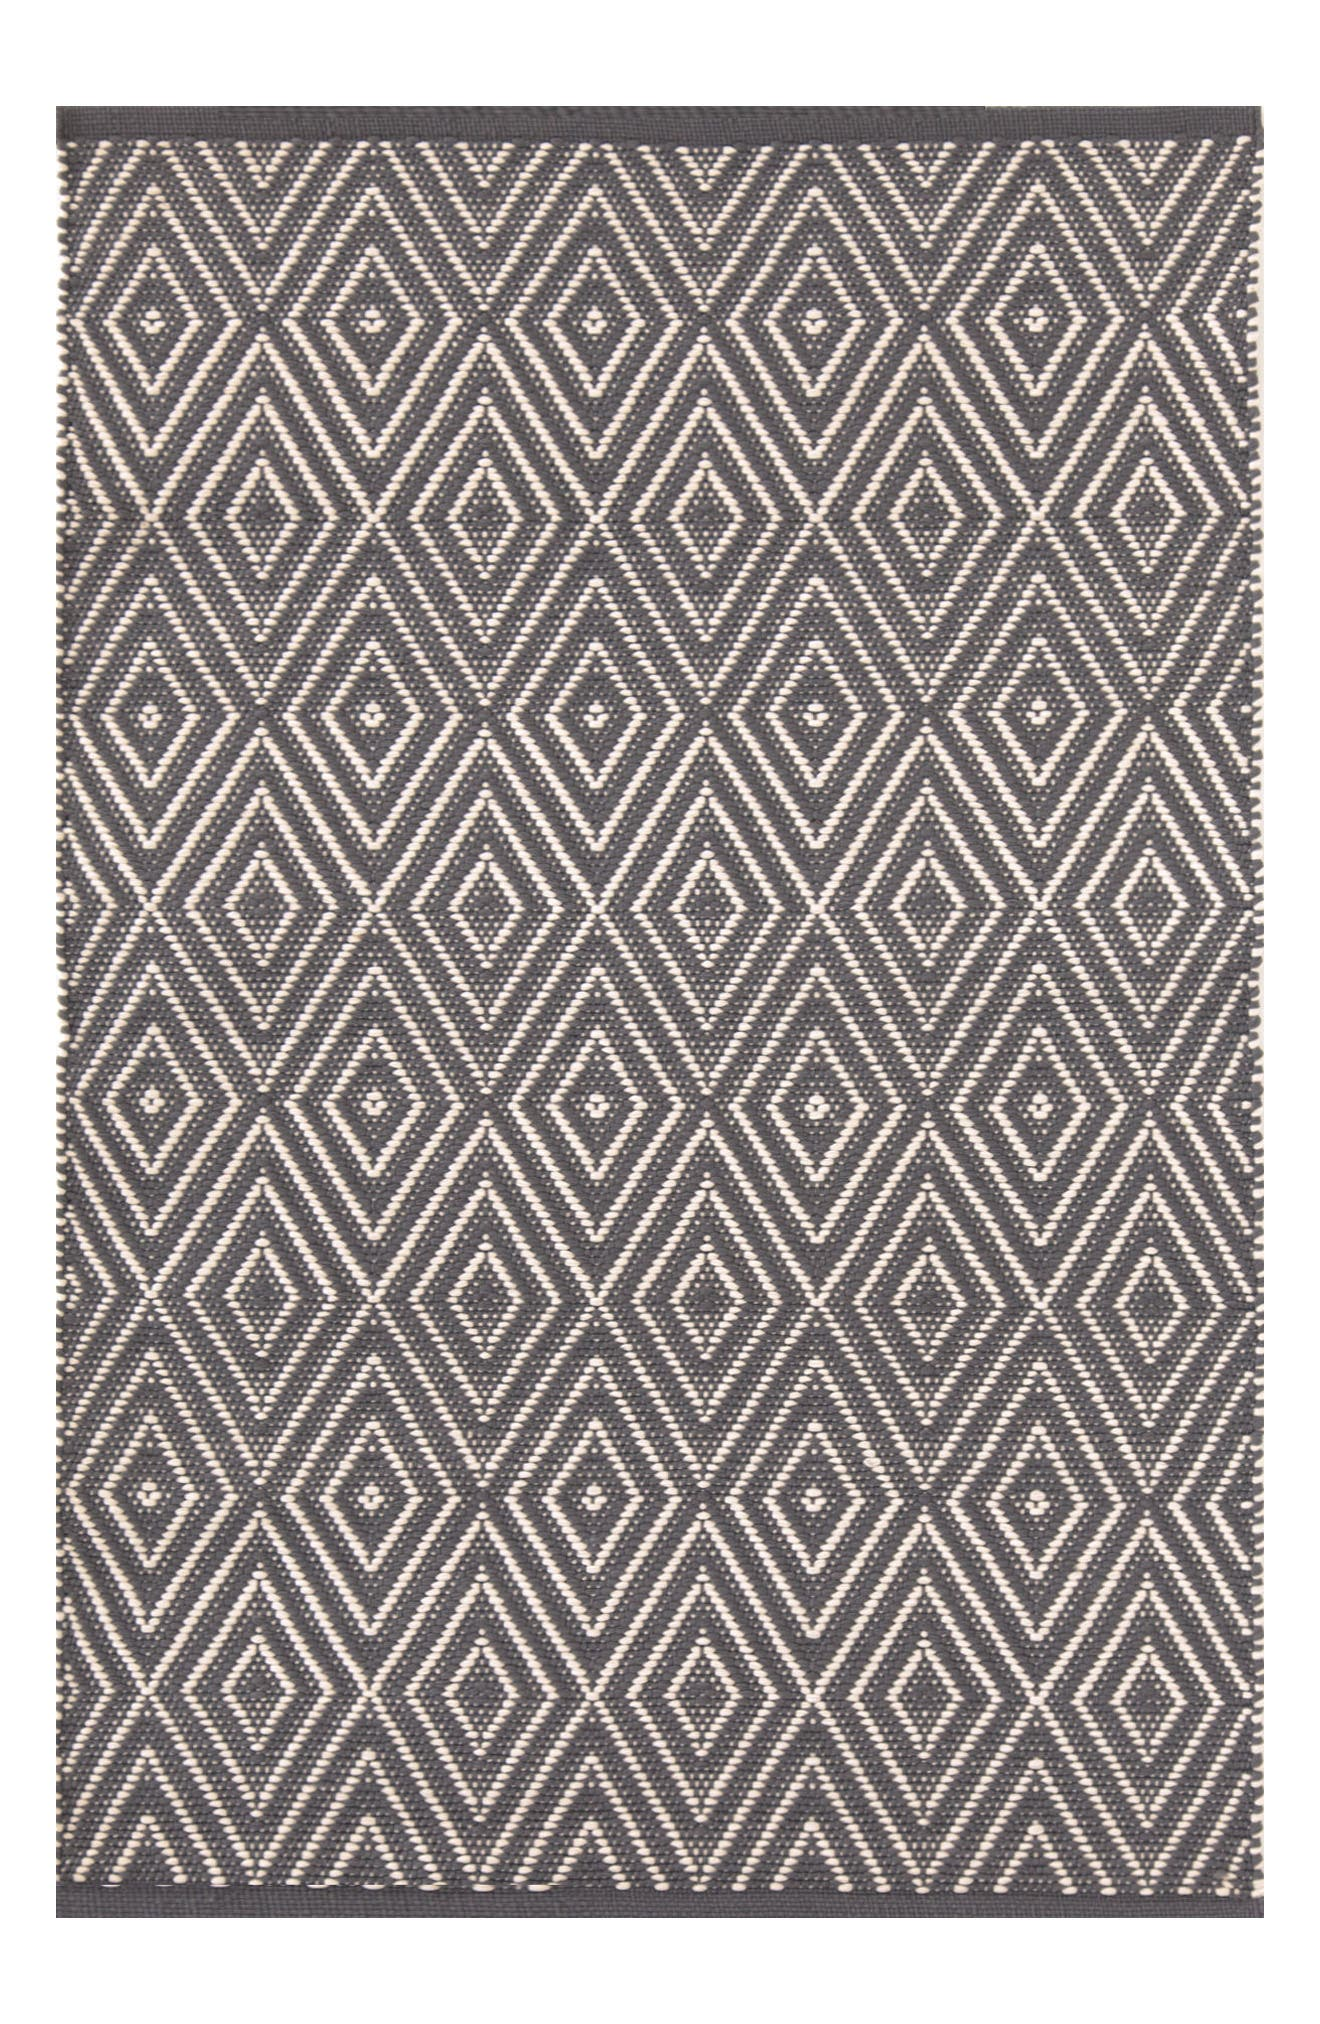 Main Image - Dash & Albert Diamond Print Rug